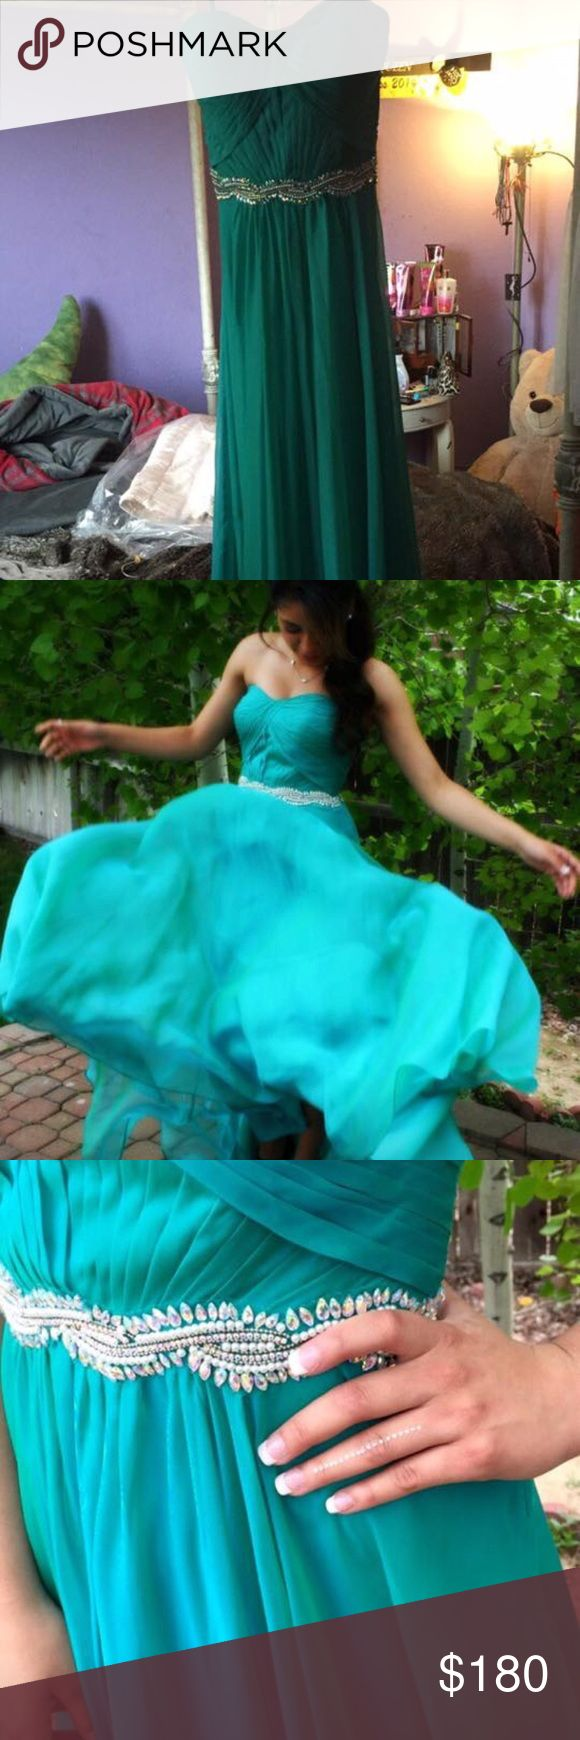 Turquoise Prom Dress Only worn once in 2015 Purchased at the Bridal Collection so no one else has it Sweet heart neckline  Strapless  Doesn't need a bra  Beading goes all the way around Long enough to wear heels Victoria's Bridal Collection Dresses Prom